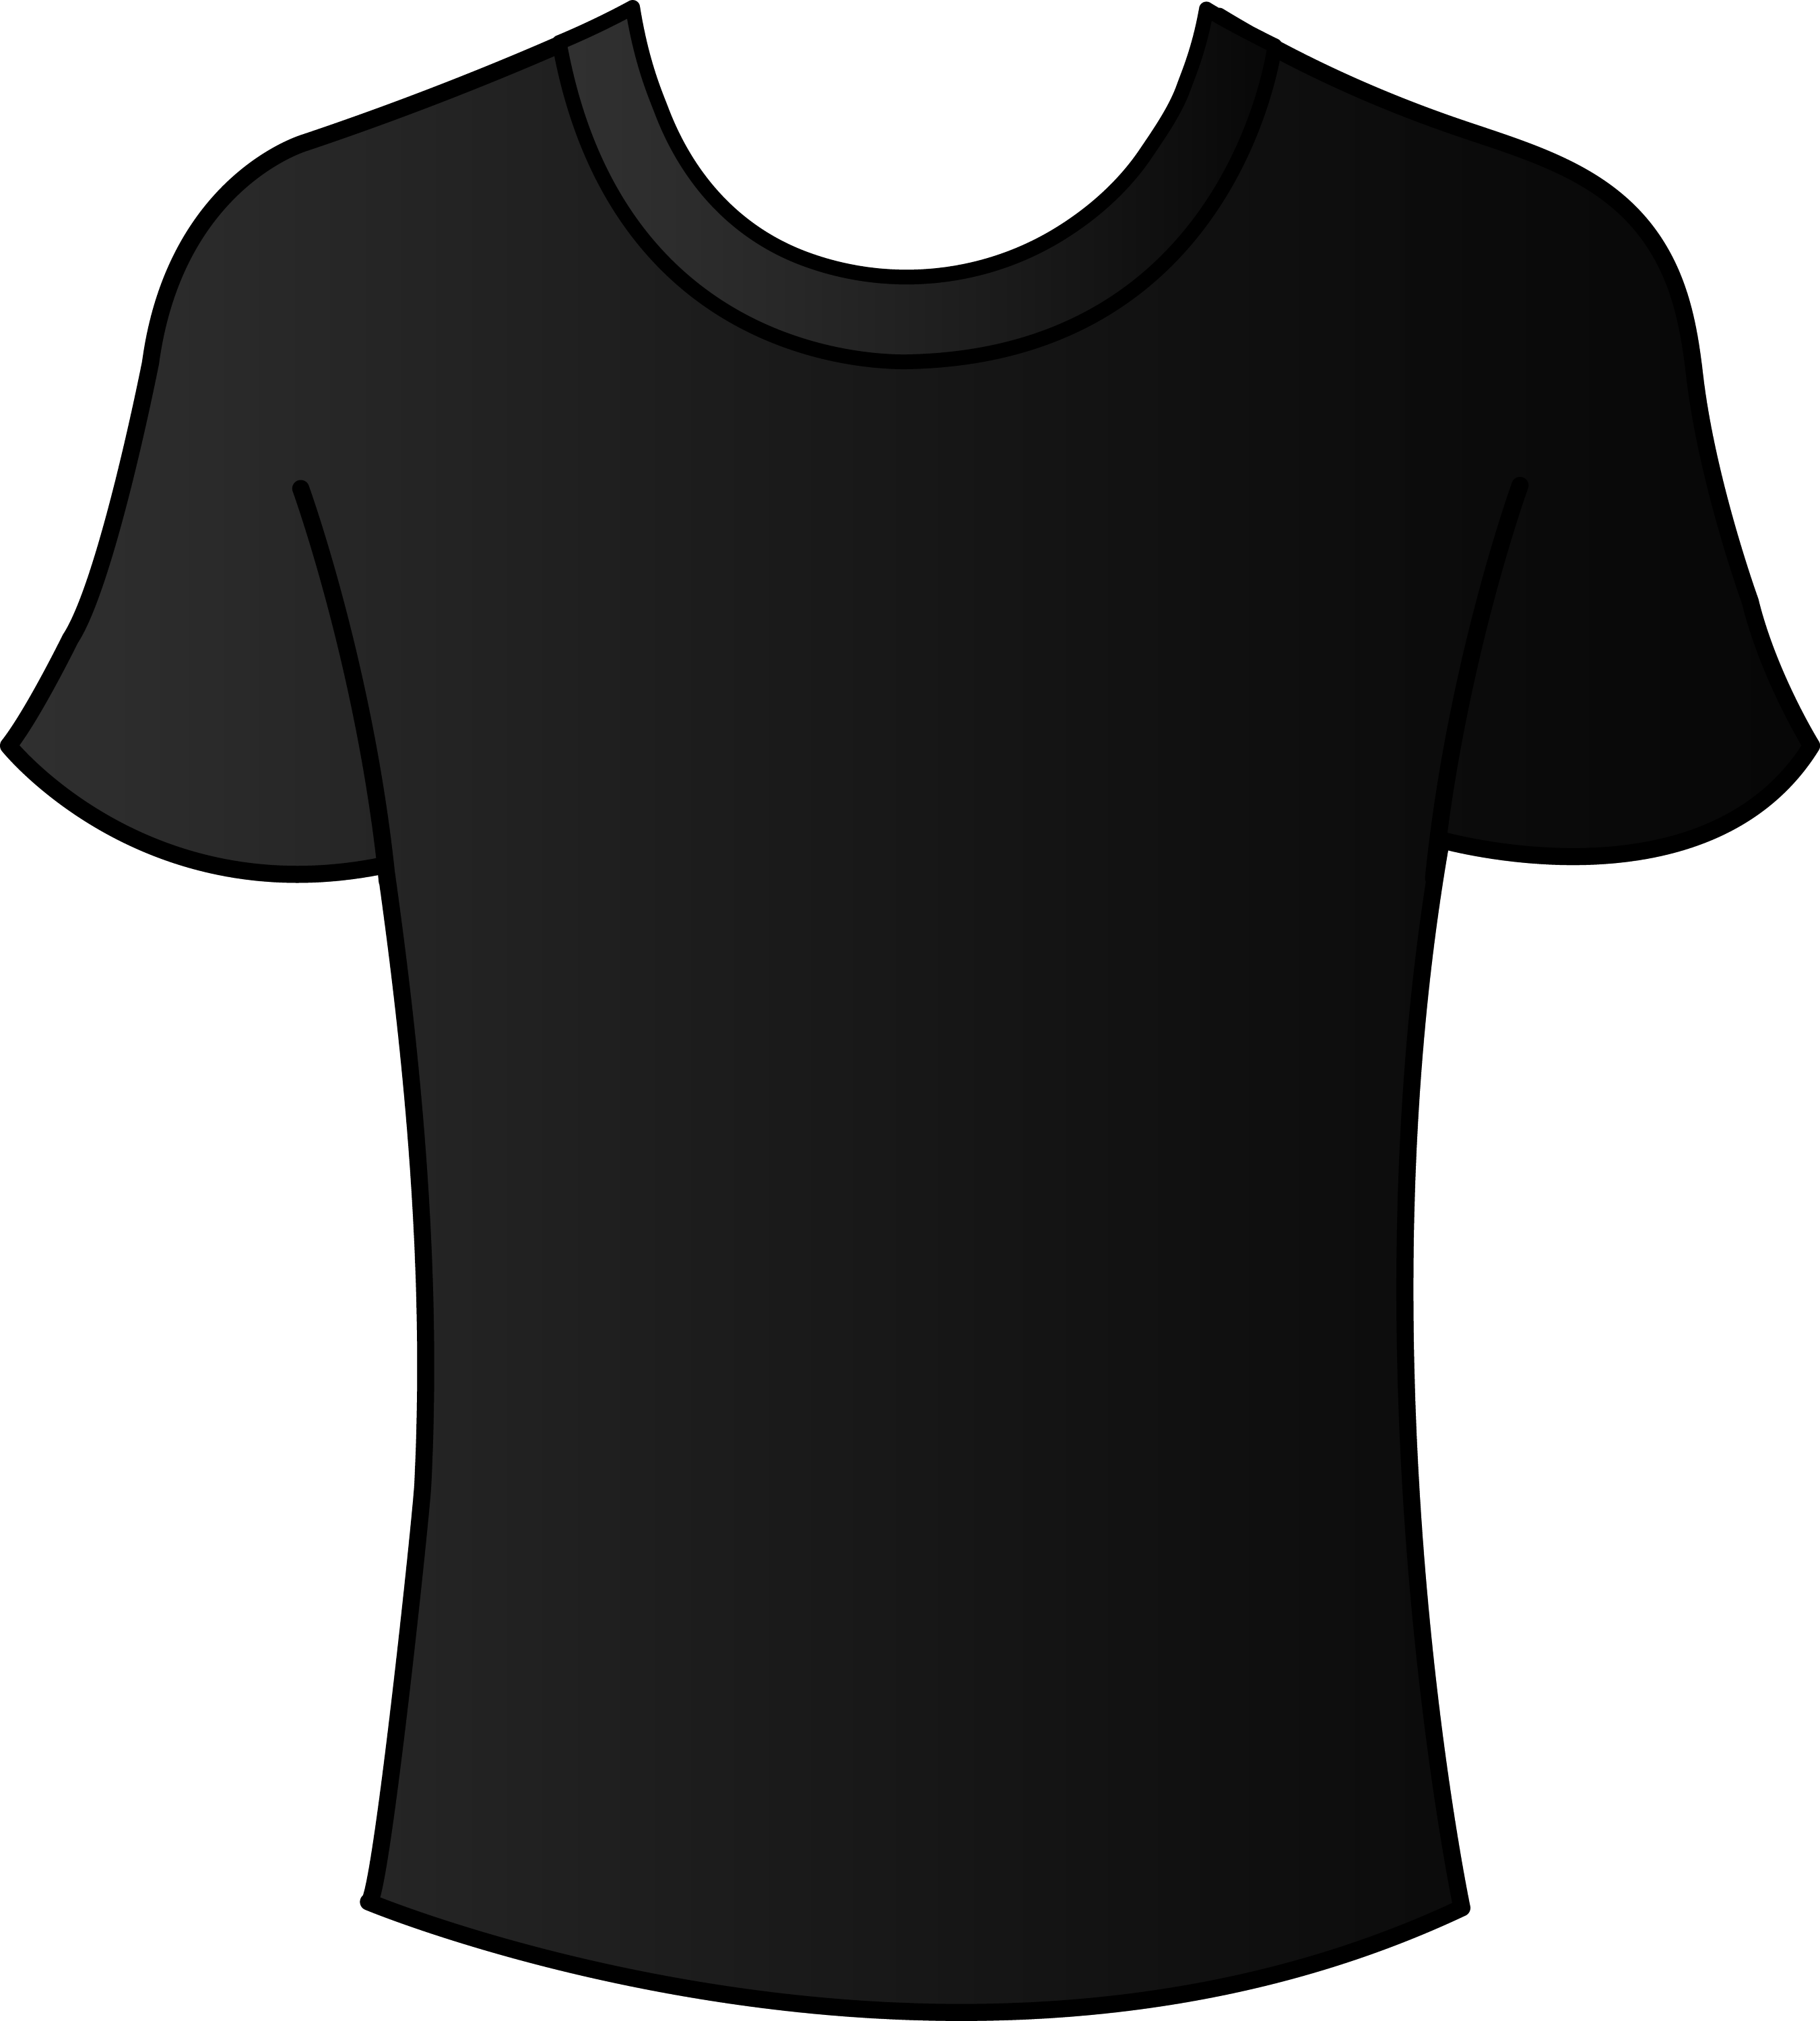 black t shirts template - photo #35